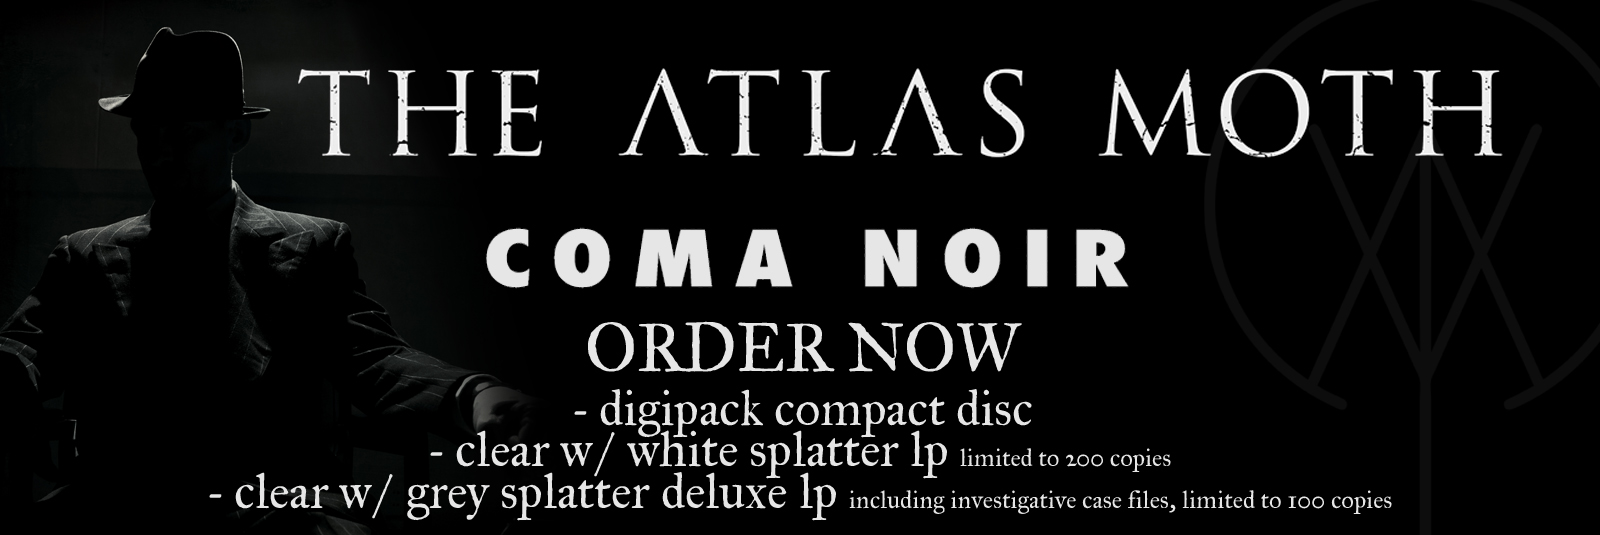 The Atlas Moth - Coma Noir out Feb. 9th 2018